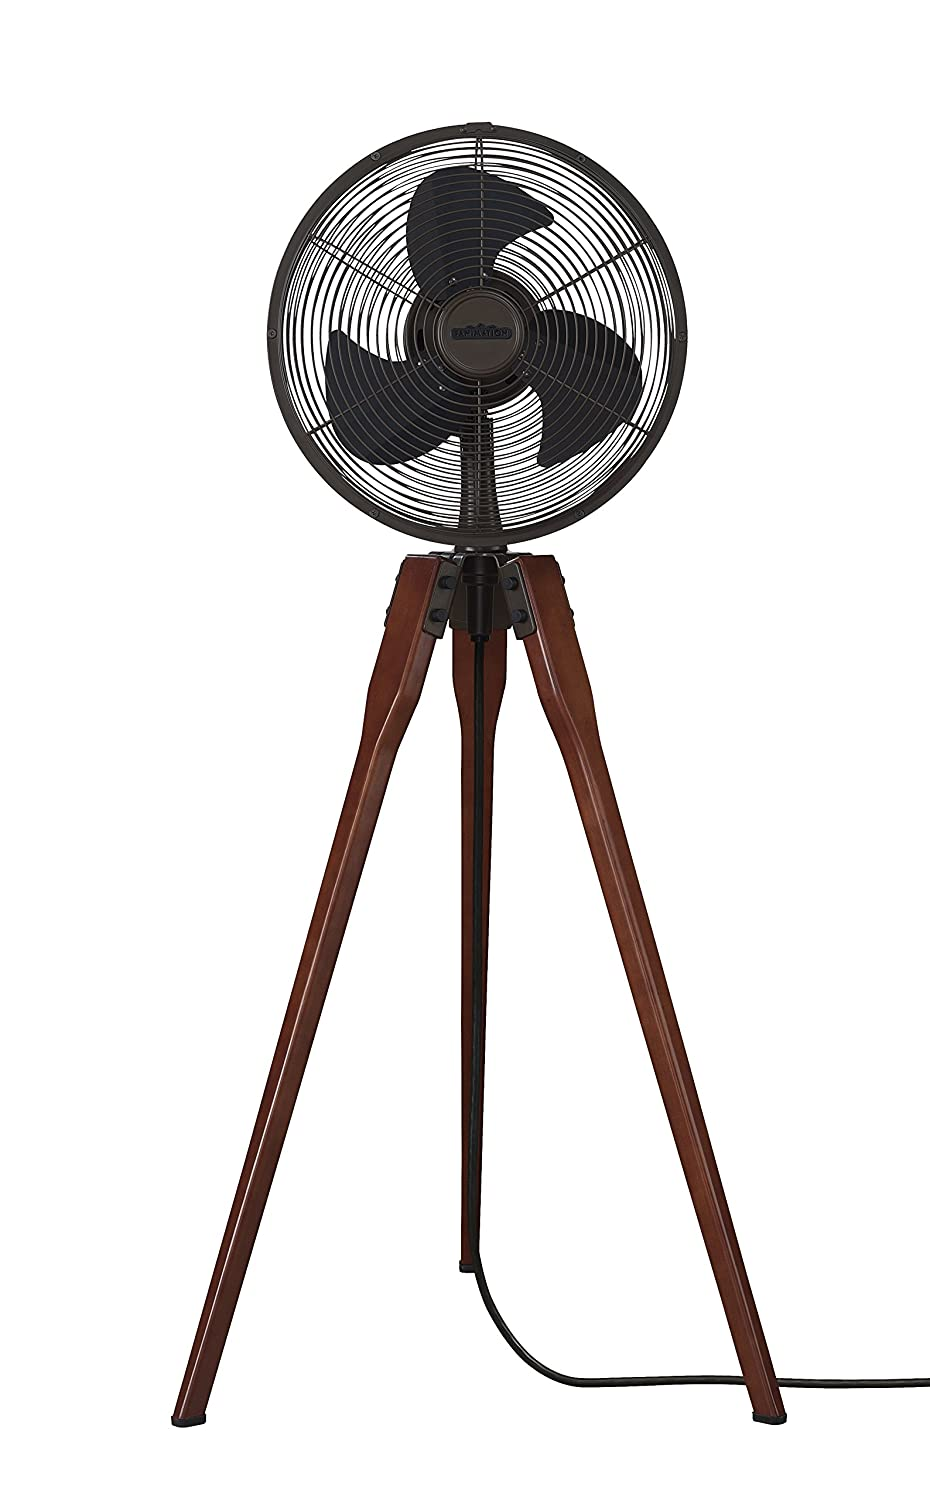 outdoor floor fans. Amazon.com: Fanimation Arden Pedestal Fan - Oil-Rubbed Bronze With Power Cord 220v FP8014OB-220: Home Improvement Outdoor Floor Fans C